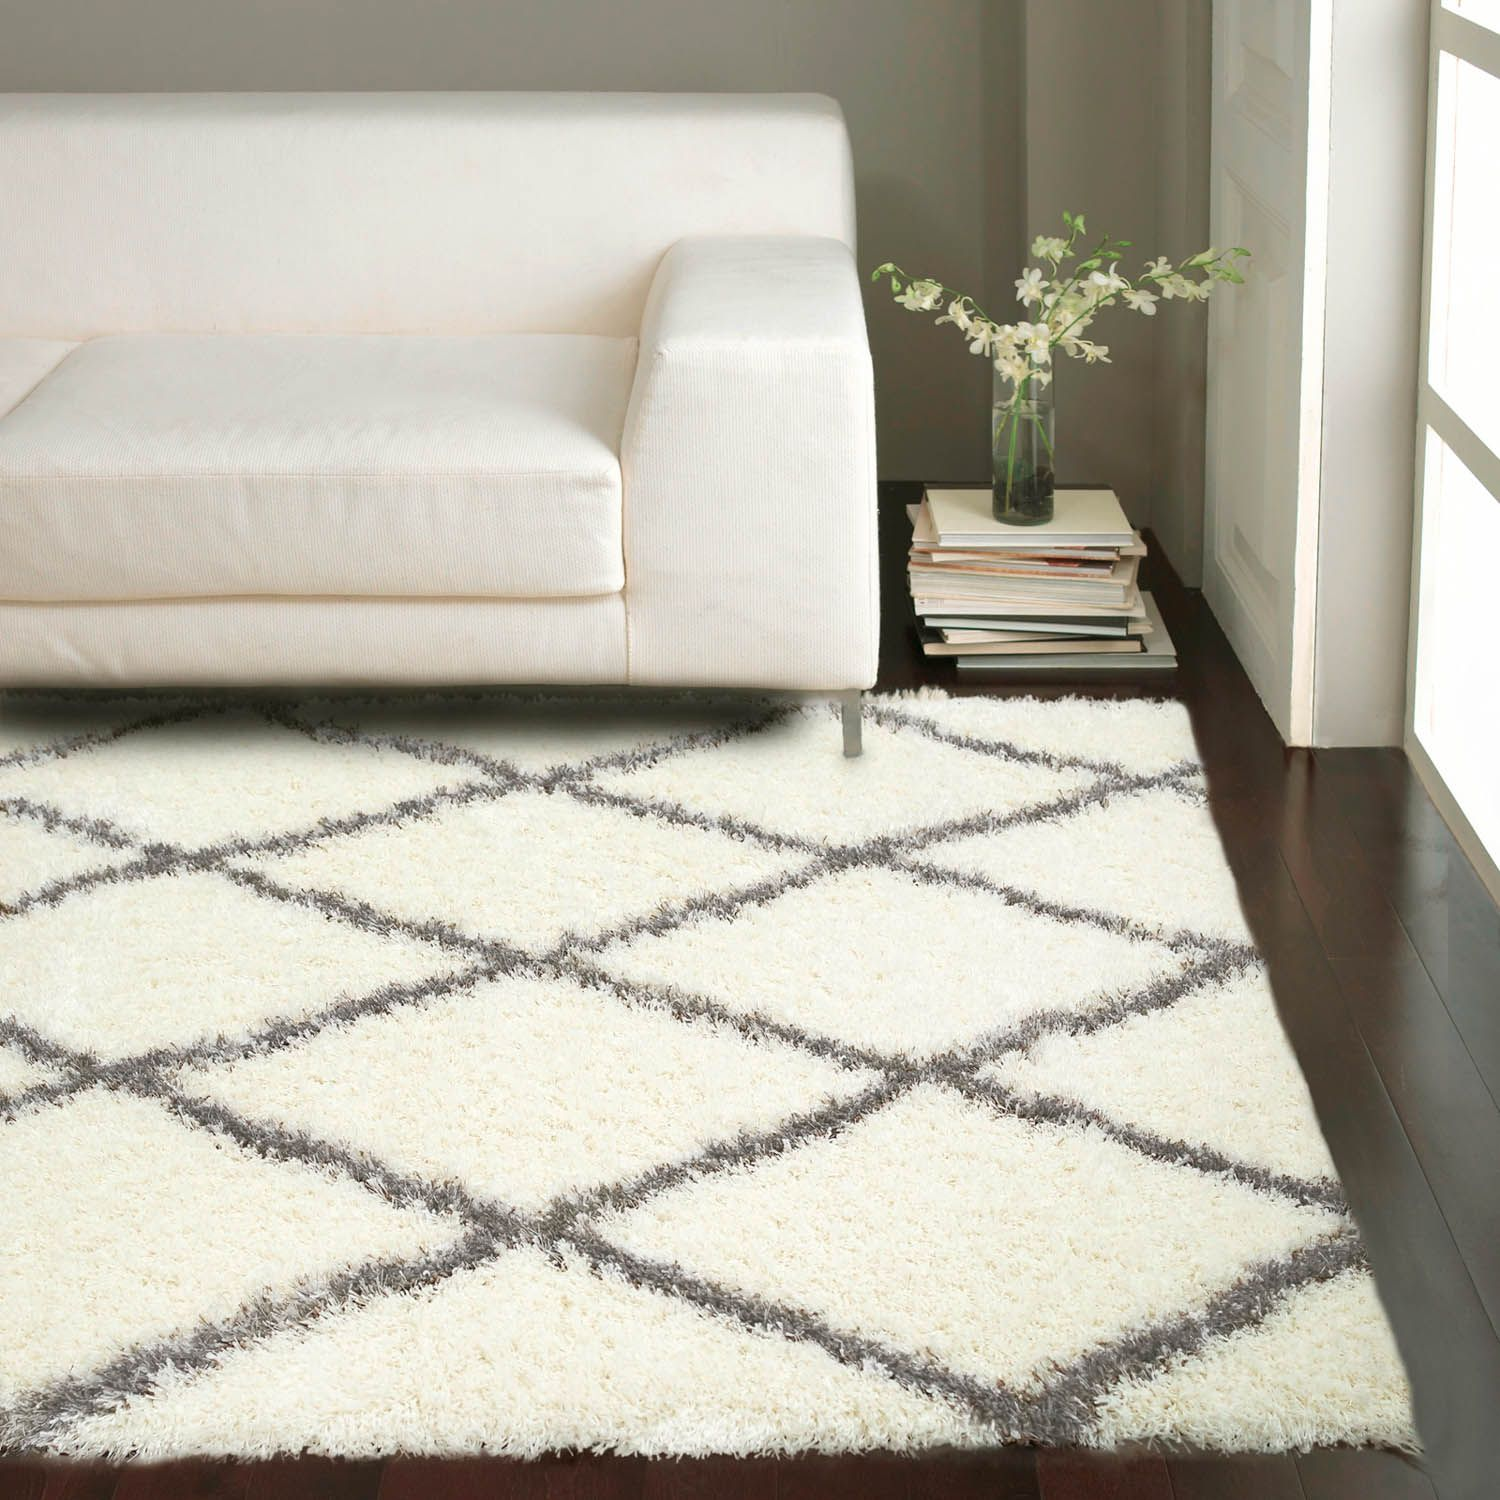 55 Off With Code Sum55 Rugs Usa Moroccan Diamond Ash Rug Trellis